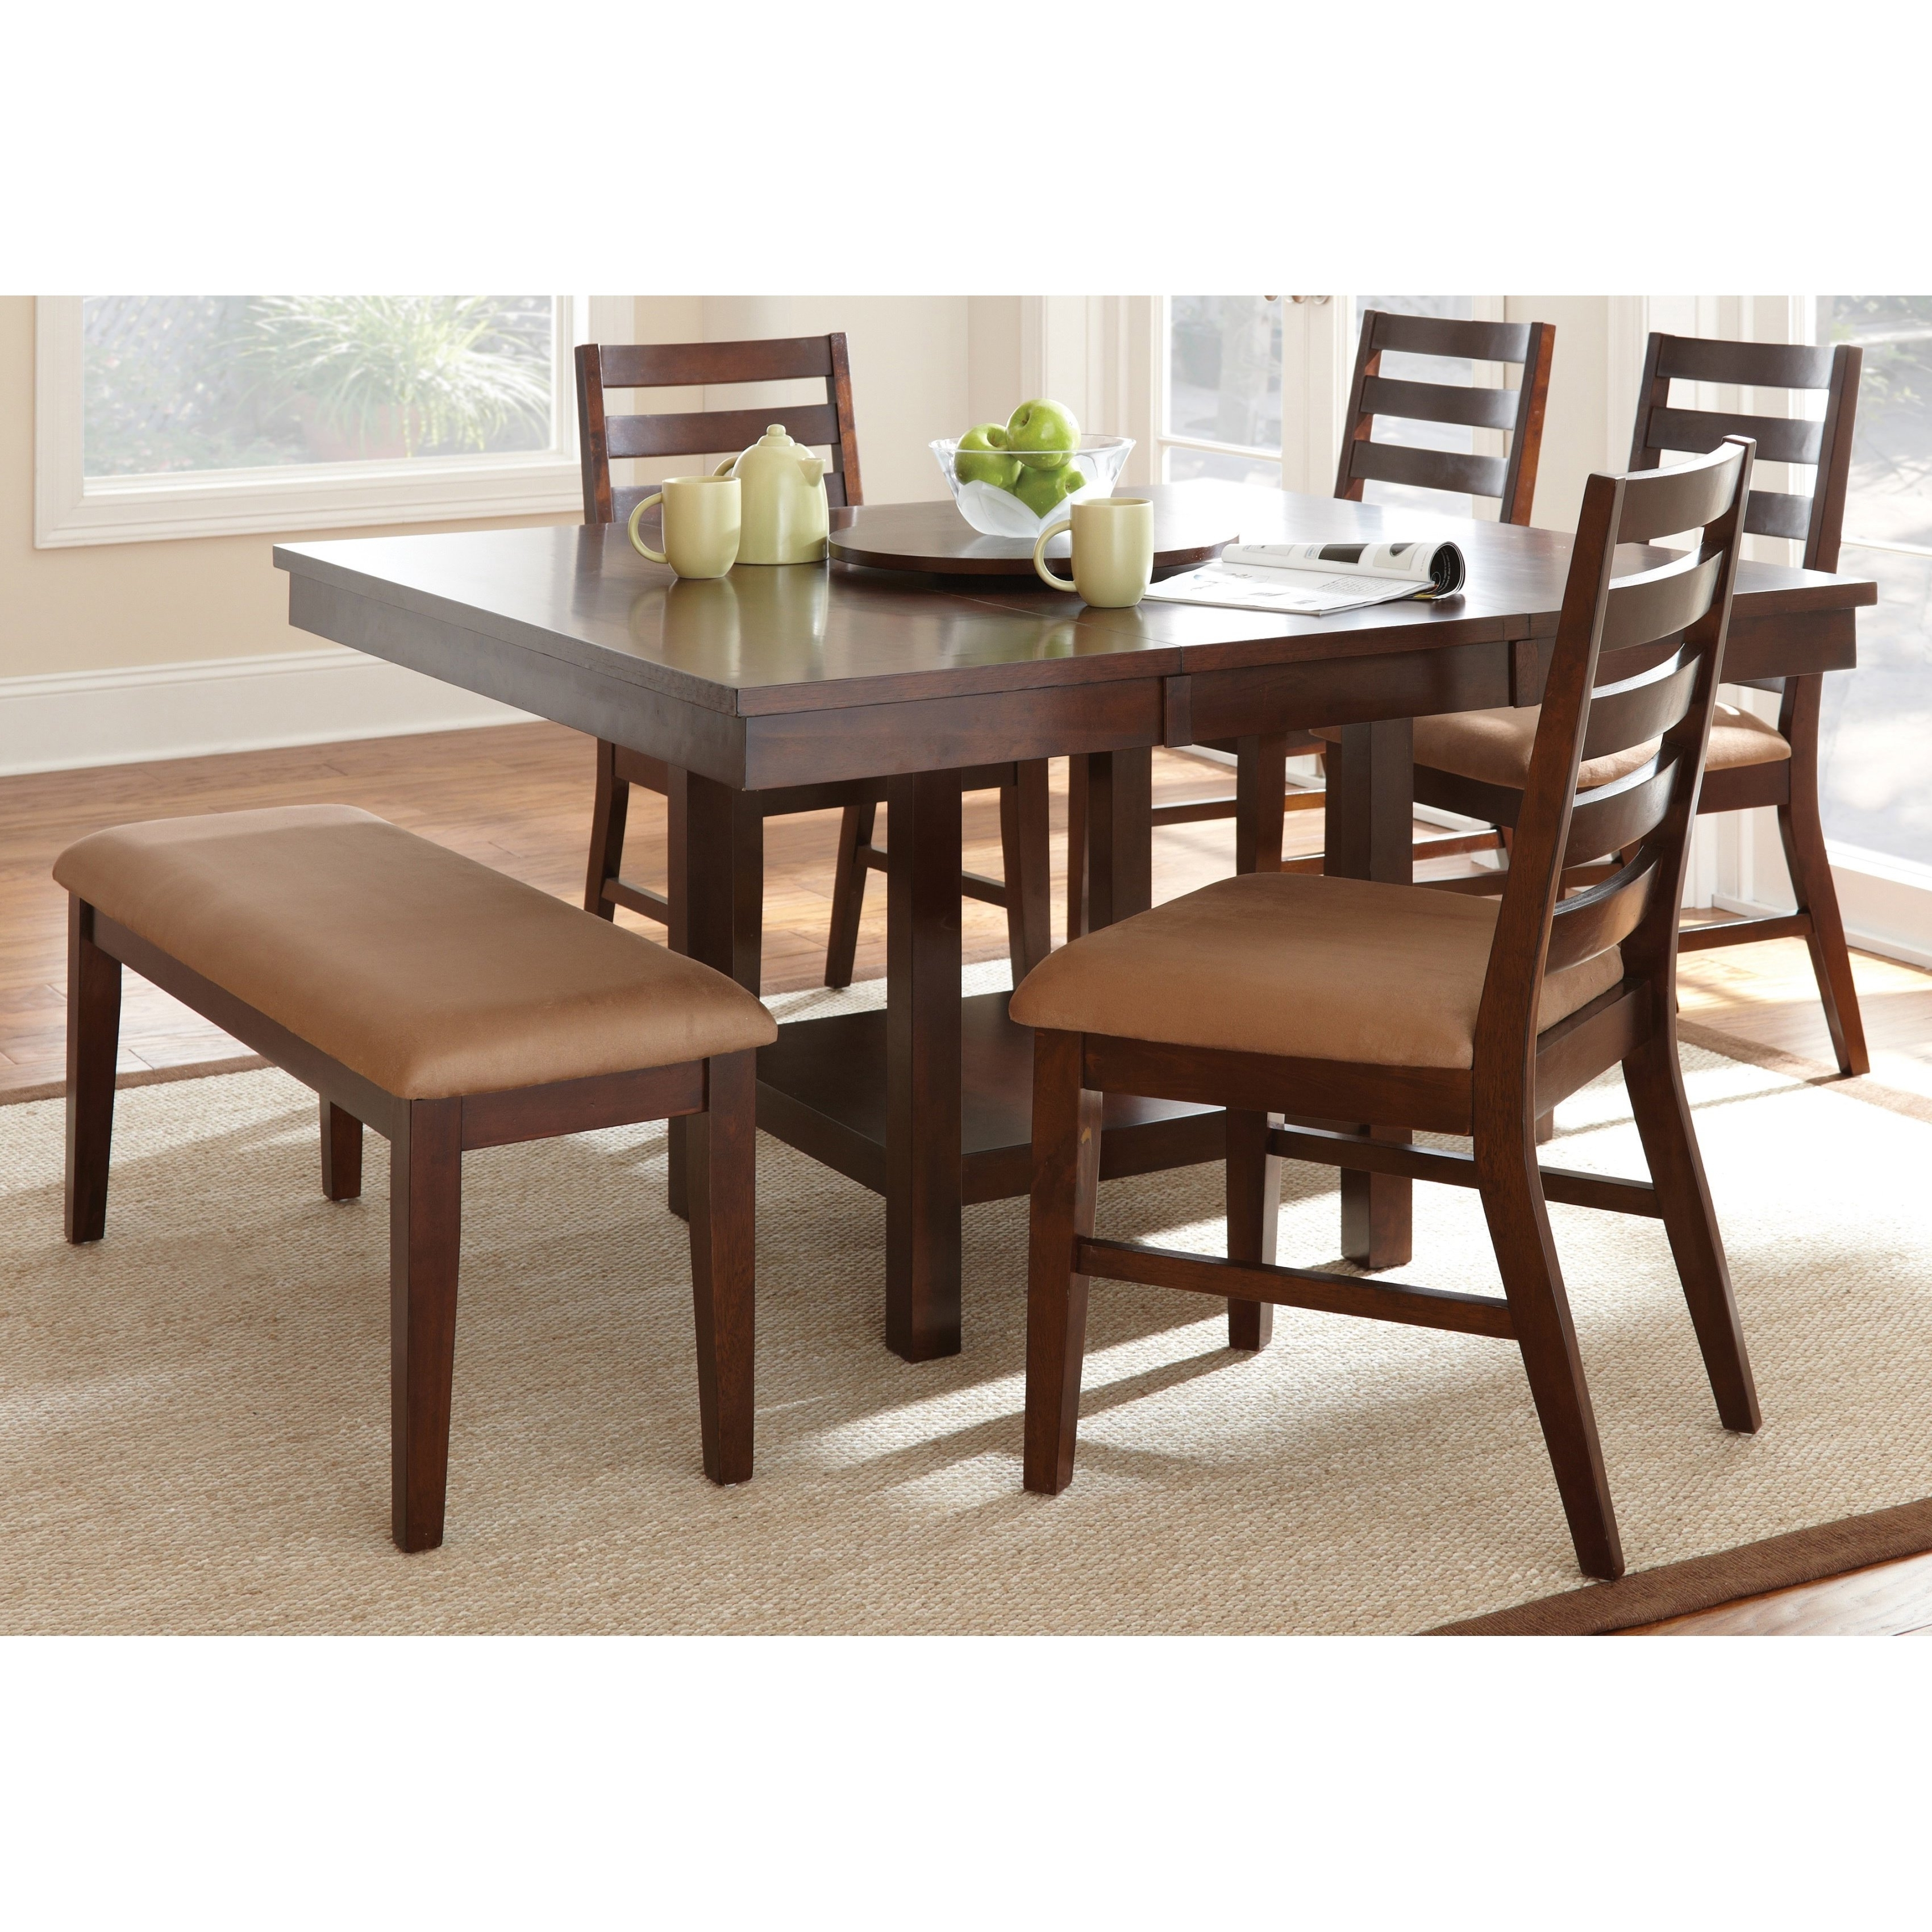 Shop Greyson Living Emery With Lazy Susan Dining Table Set – Ships Regarding Best And Newest Leon 7 Piece Dining Sets (View 20 of 25)